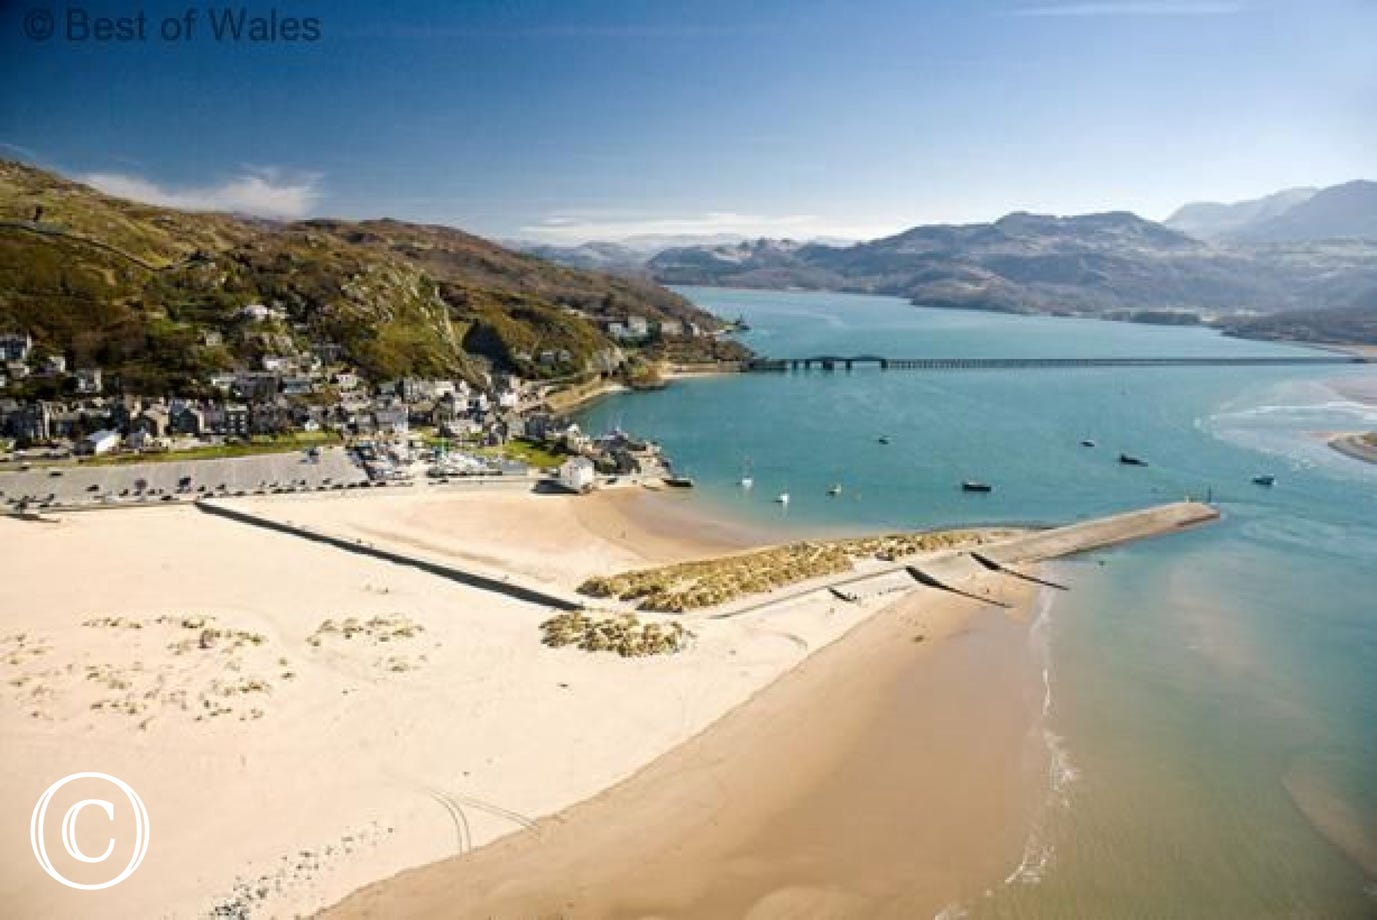 The large sandy beach at Barmouth (14 miles) has a Blue Flag award